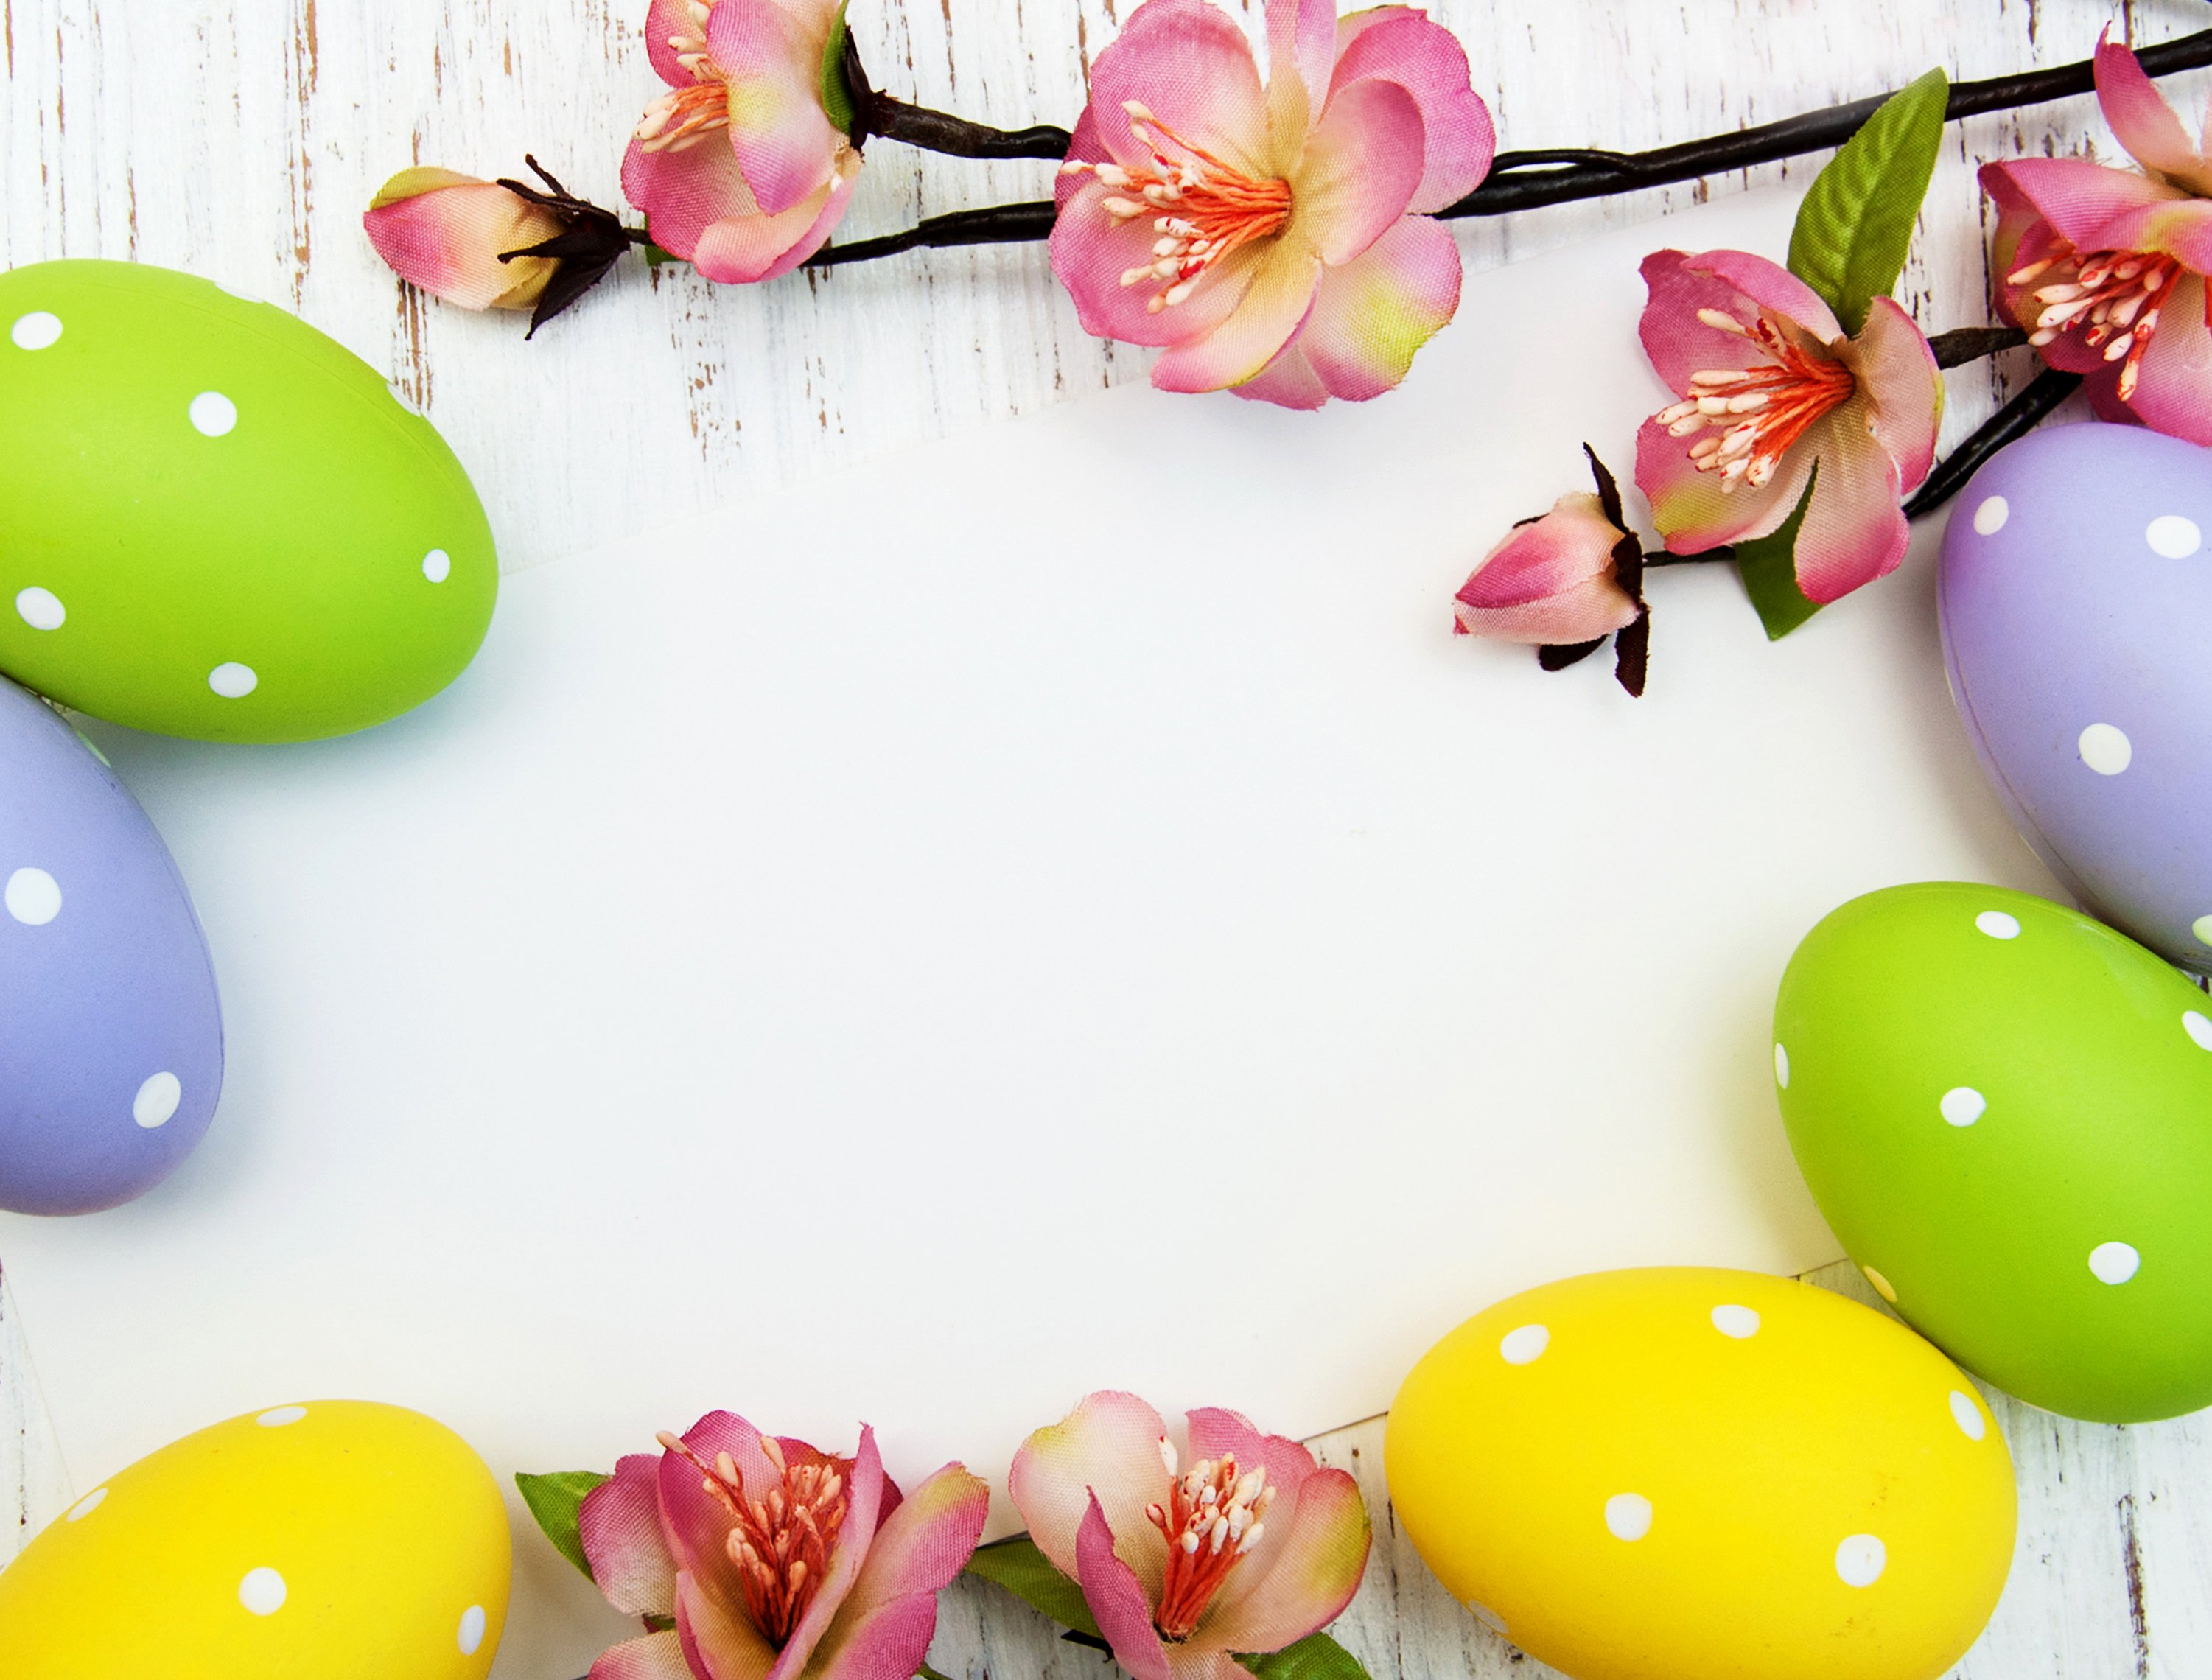 Easter Wallpaper 101 images in Collection Page 1 3002x2280